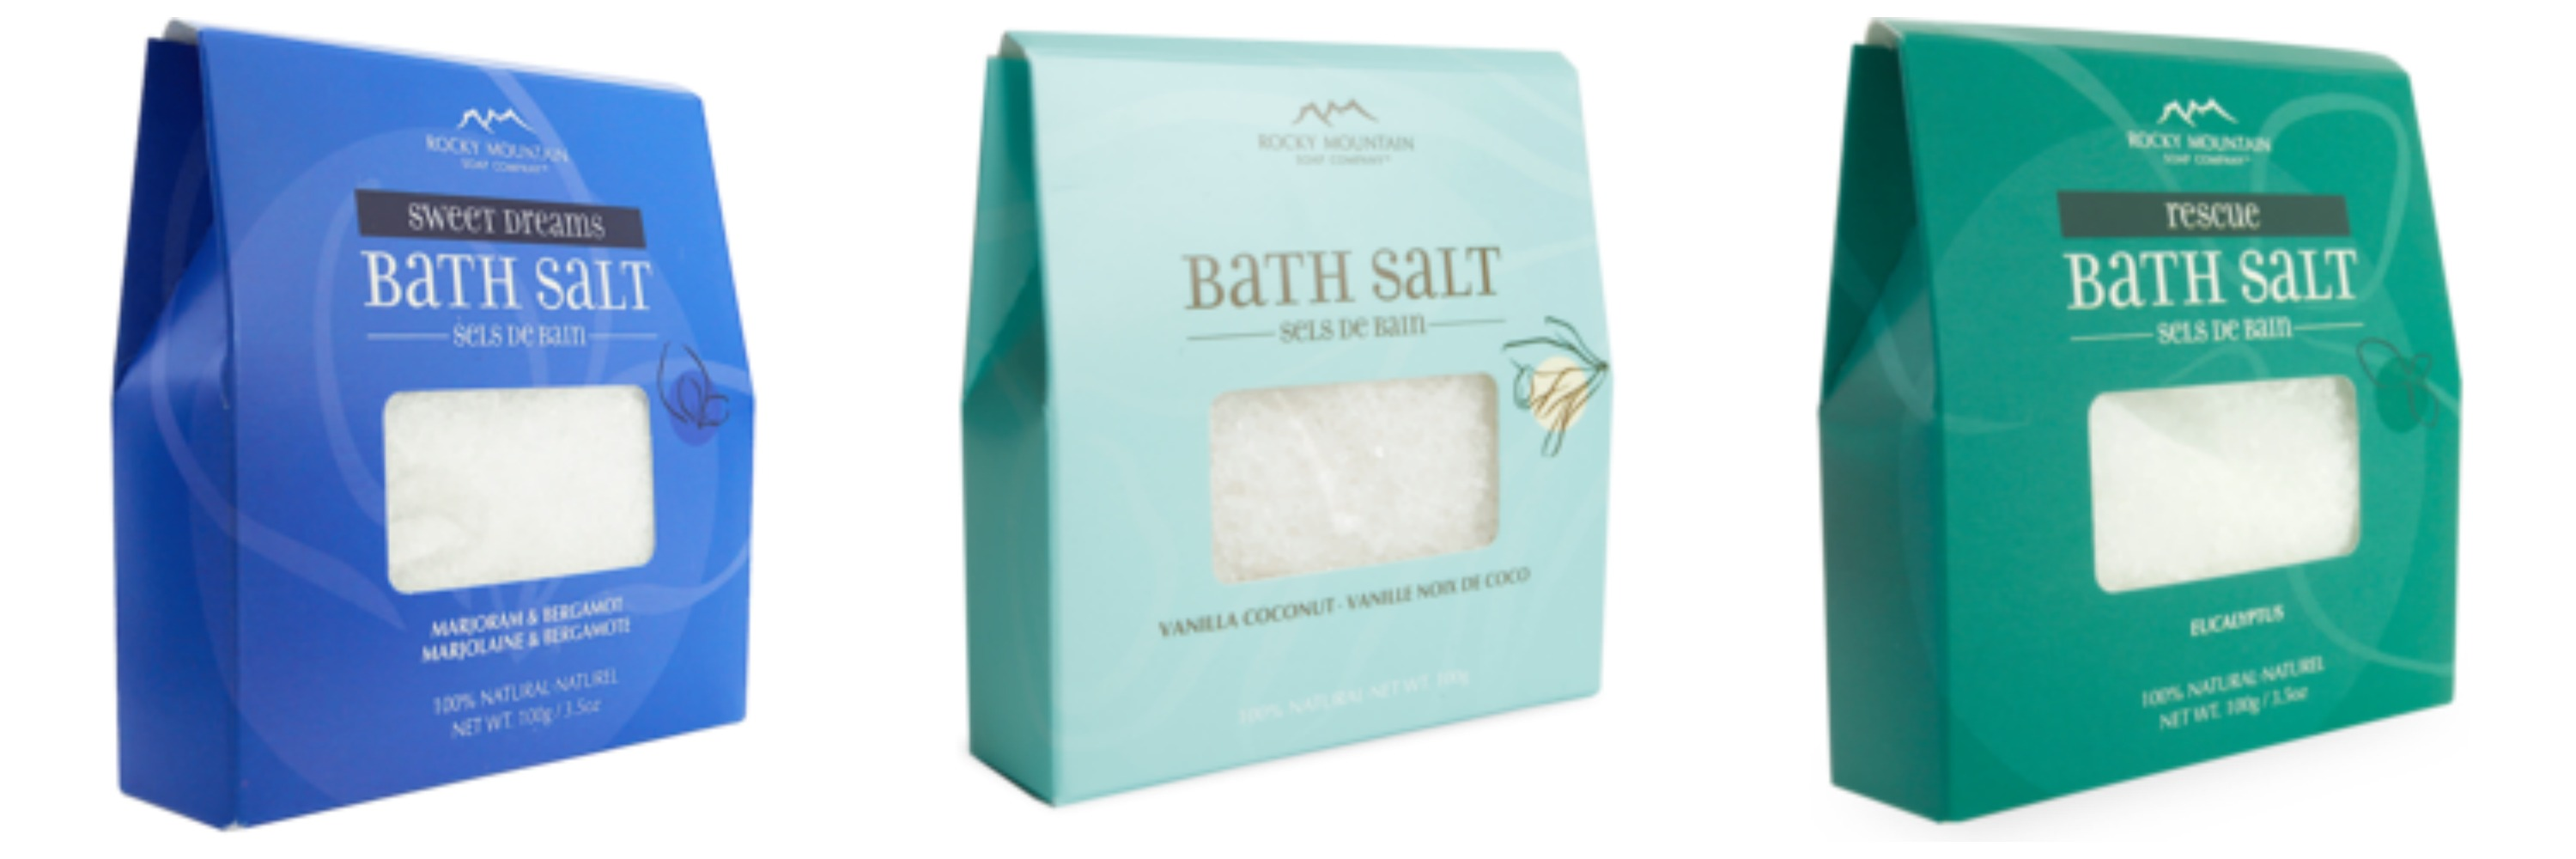 Rocky mountain soap company these are your days natural bath products bath salts collage